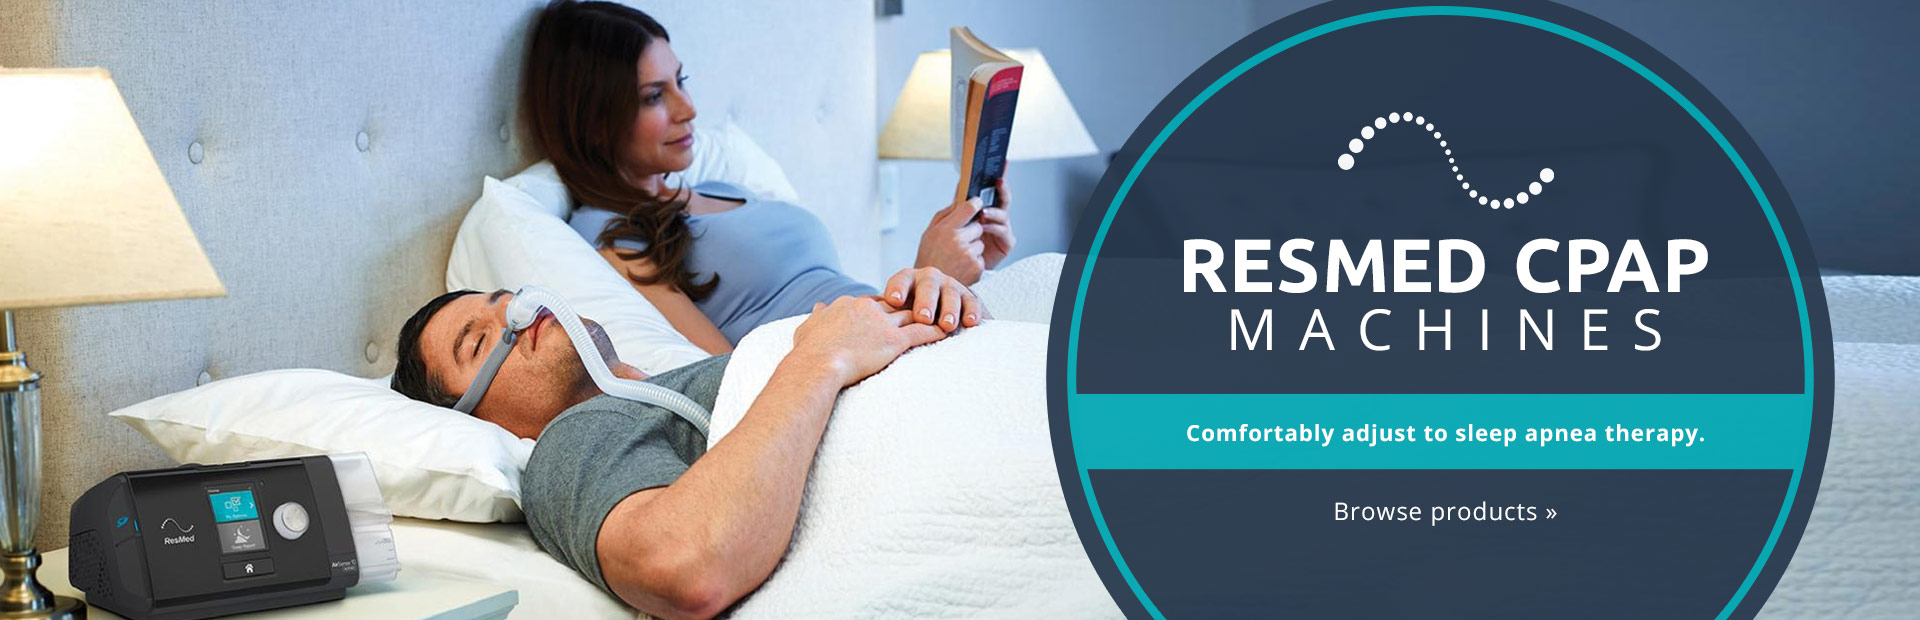 ResMed CPAP machines allow you to comfortably adjust to sleep apnea therapy! Click here to browse ou